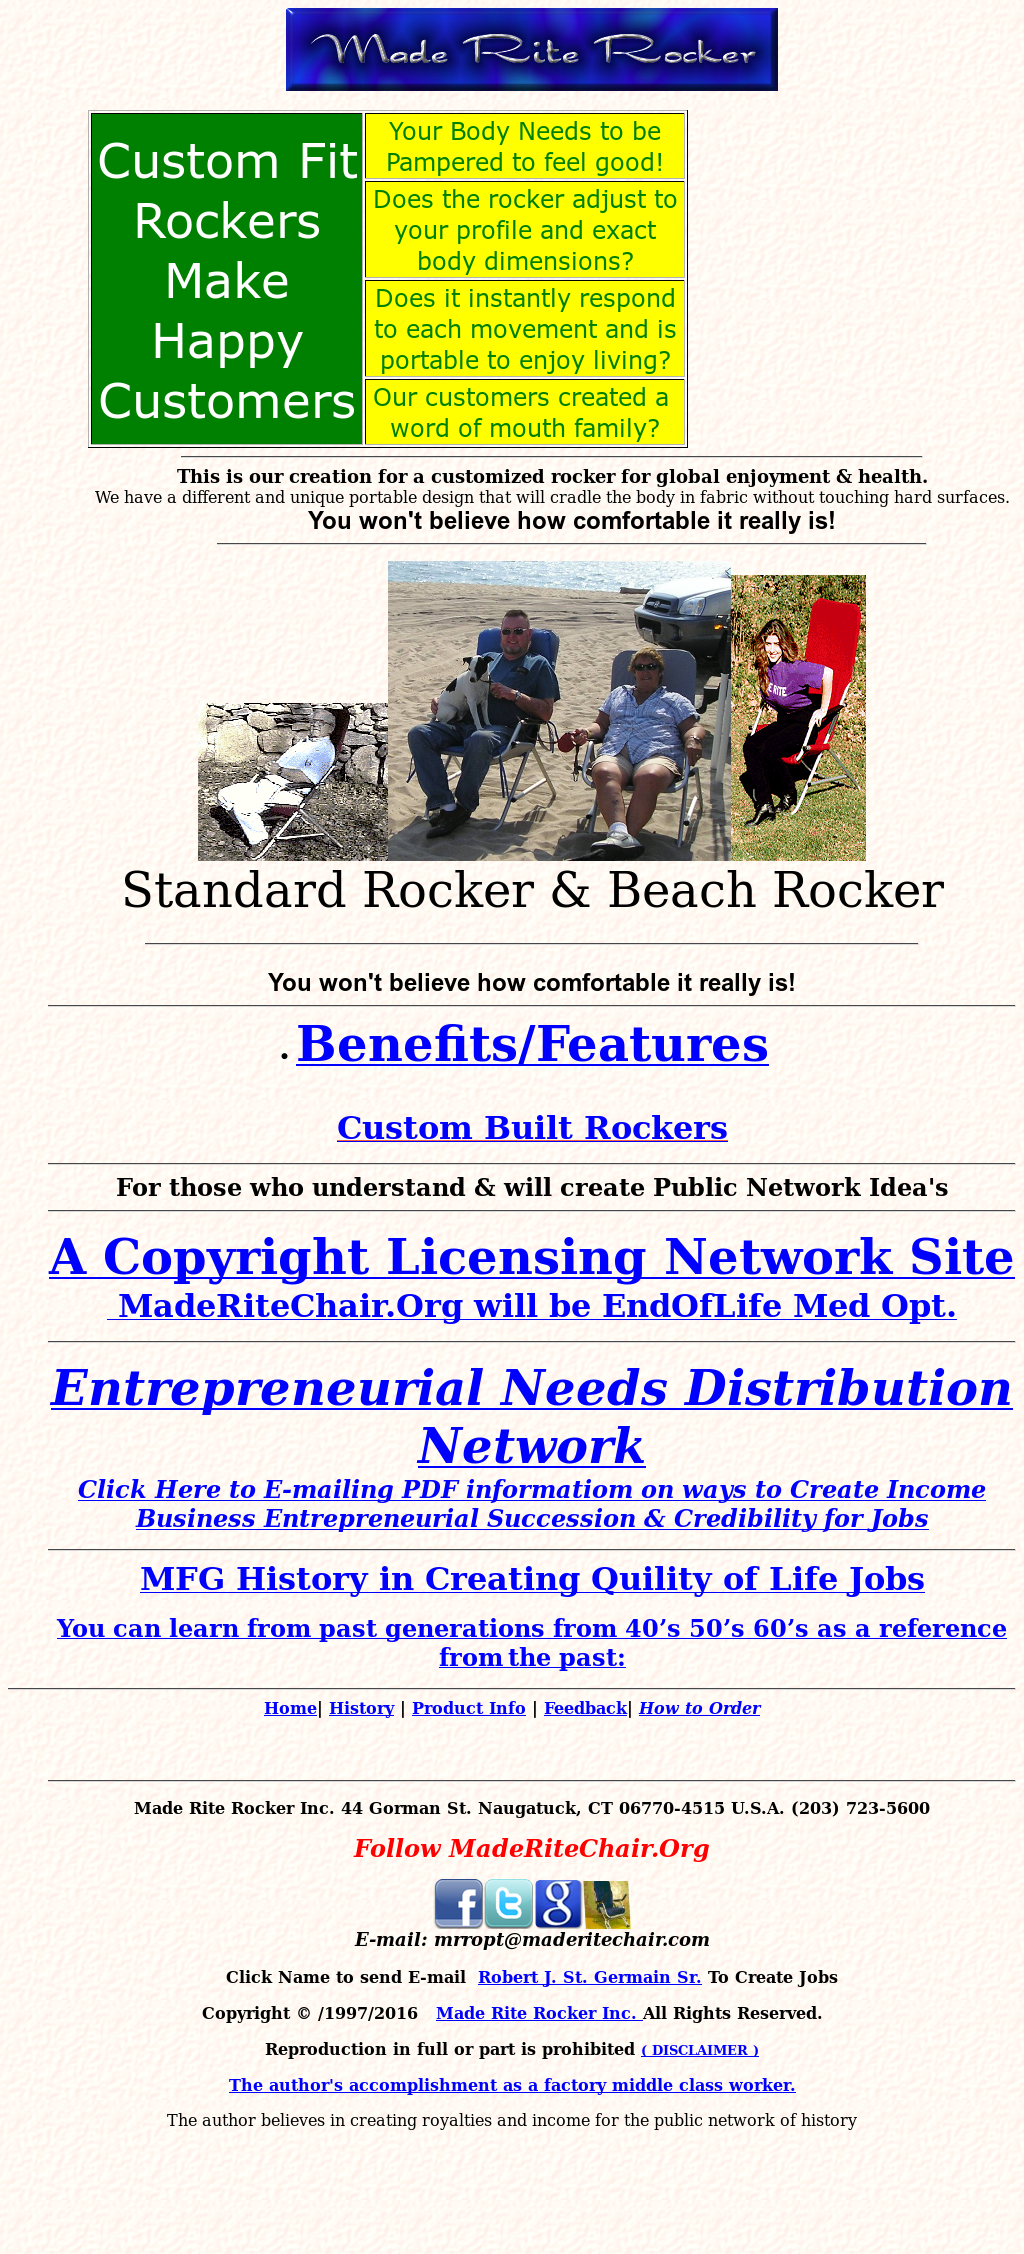 Made Rite Rocker Competitors, Revenue and Employees - Owler